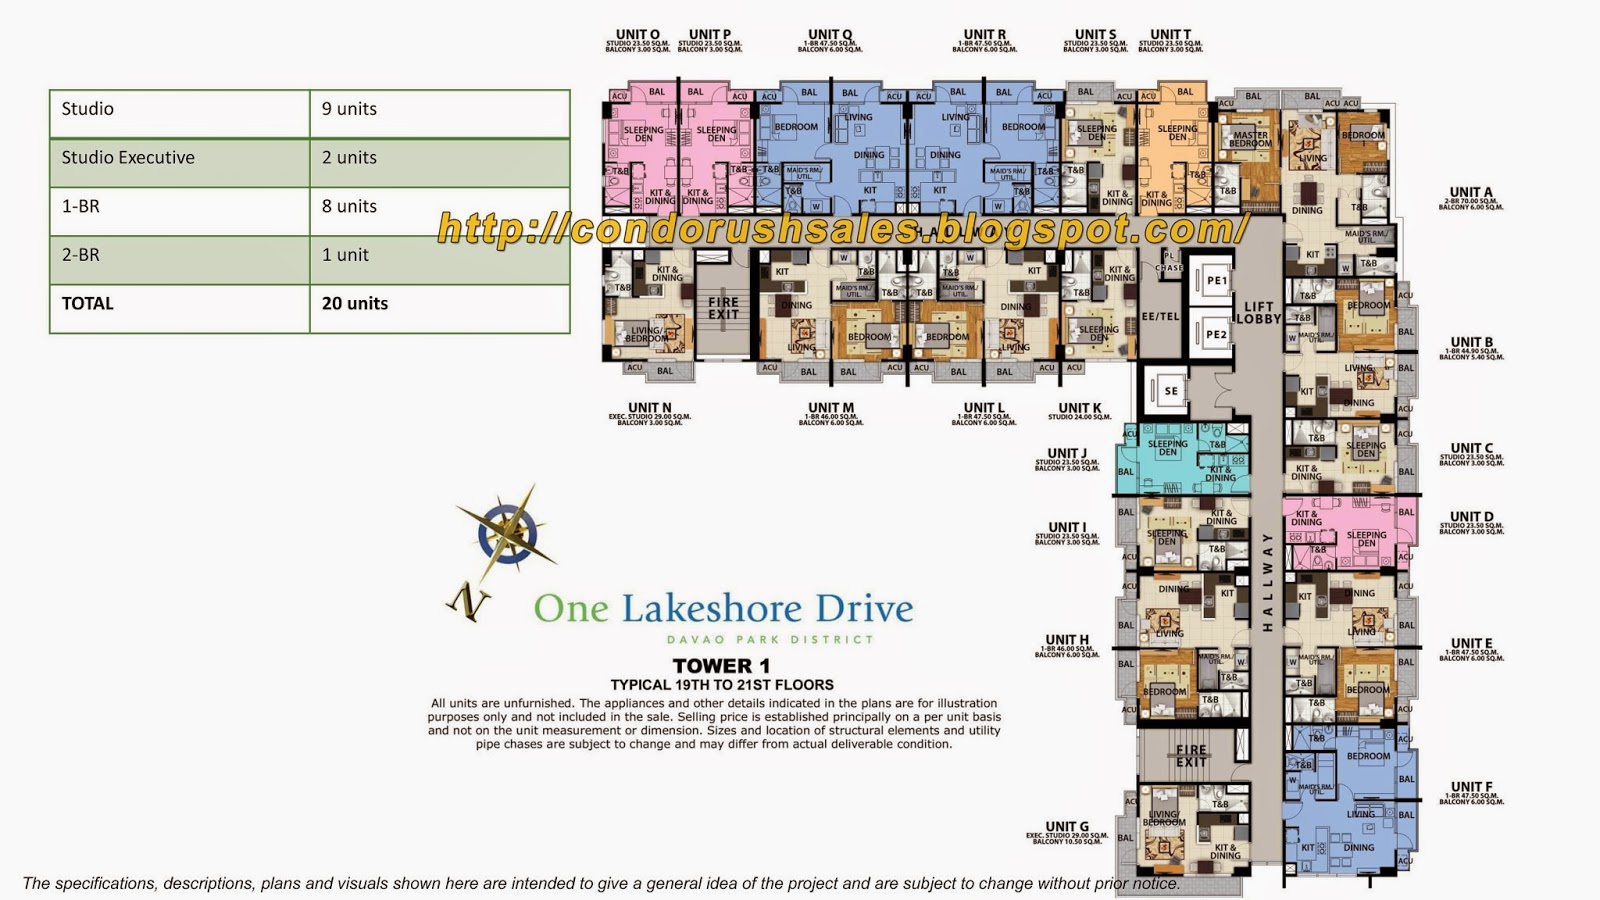 One Lakeshore Drive Tower 1 19th To 21st Floor Units